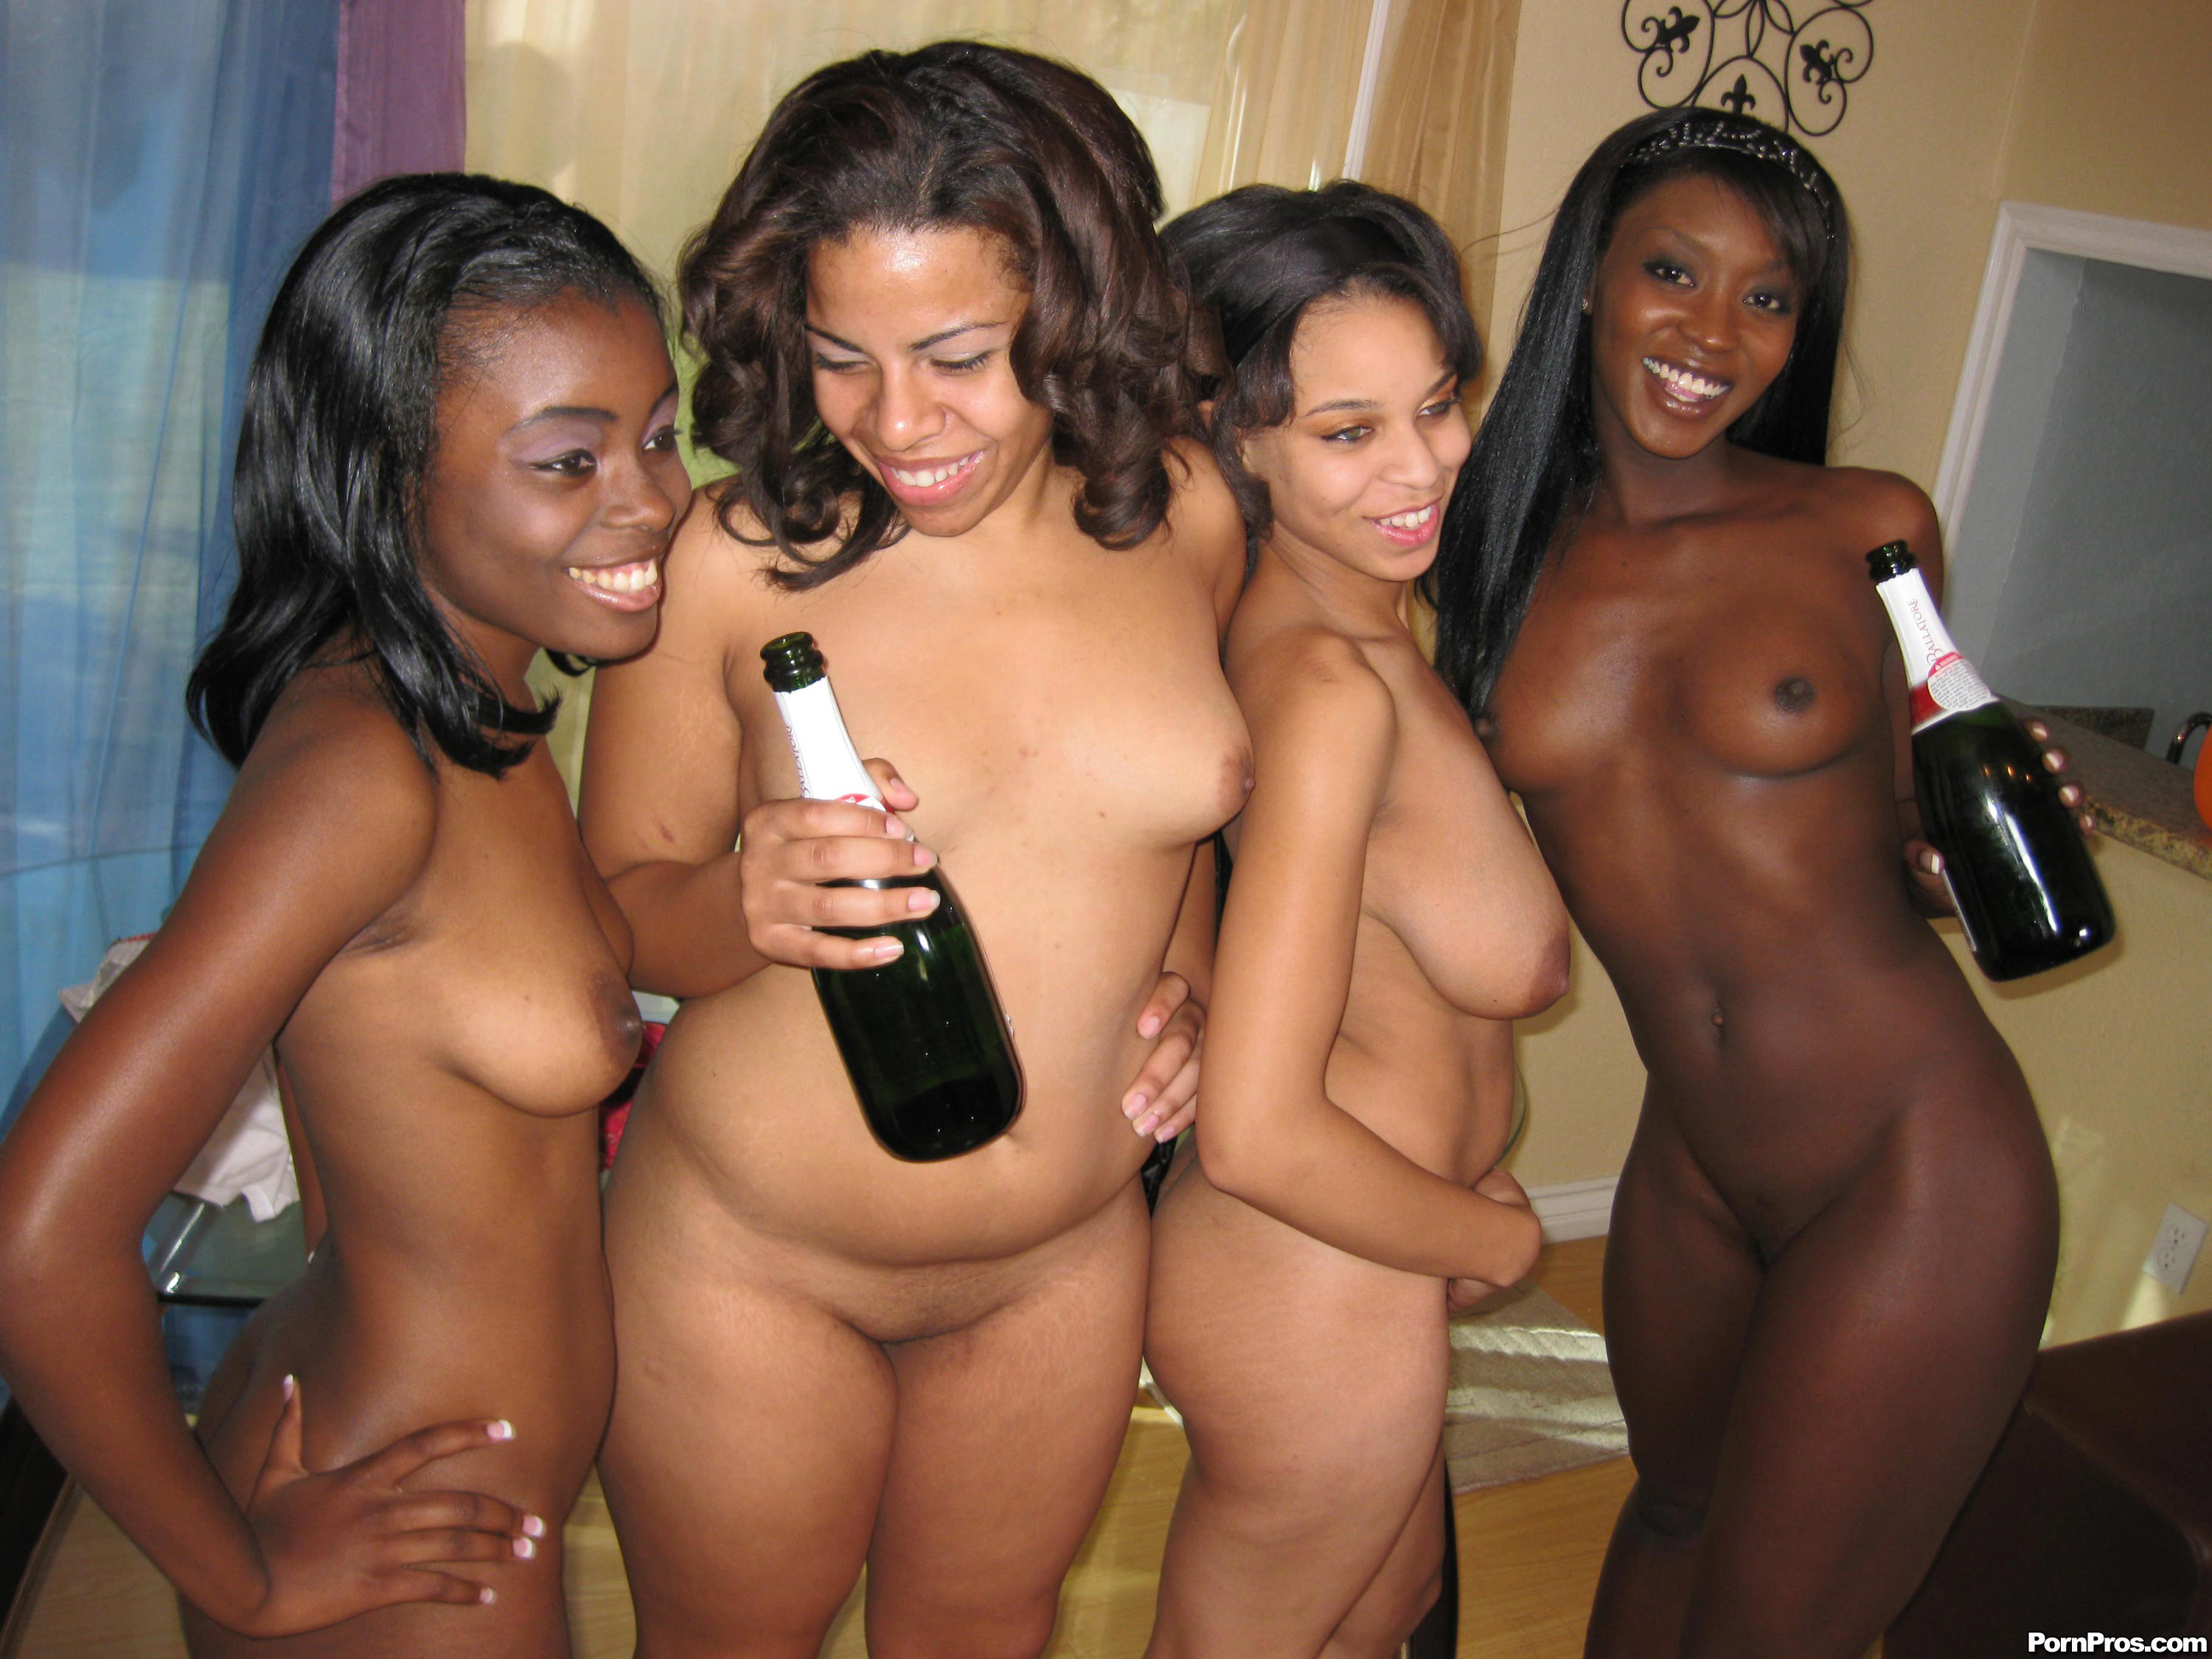 Phrase Group of naked party girls you have